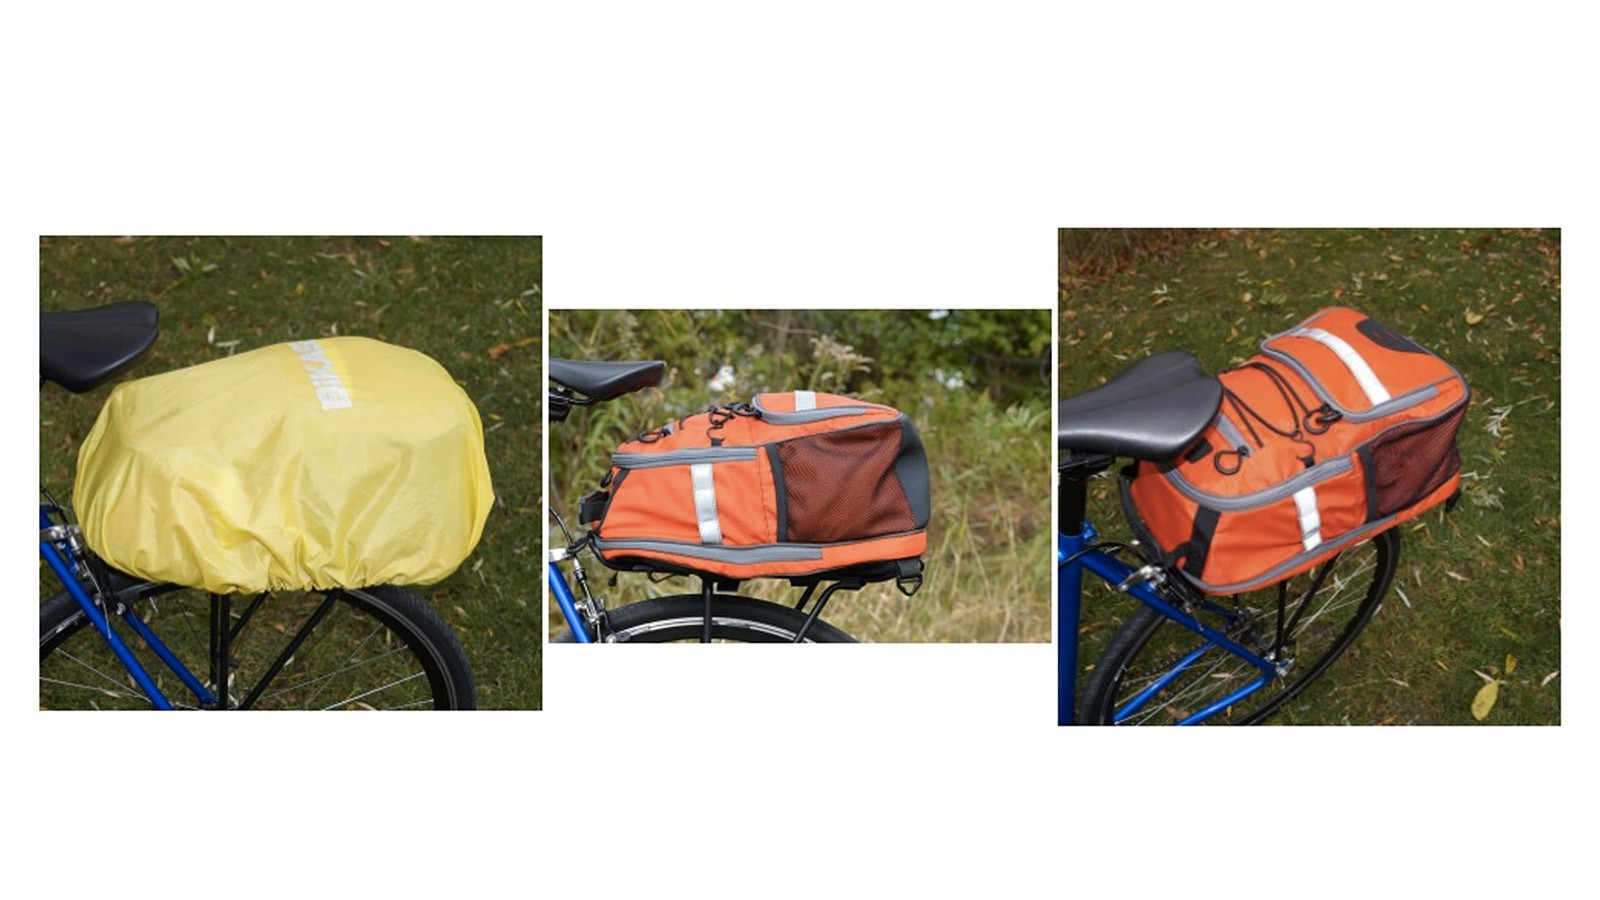 In addition to being a backpack, the Outlier can also be a trunk bag and a pannier